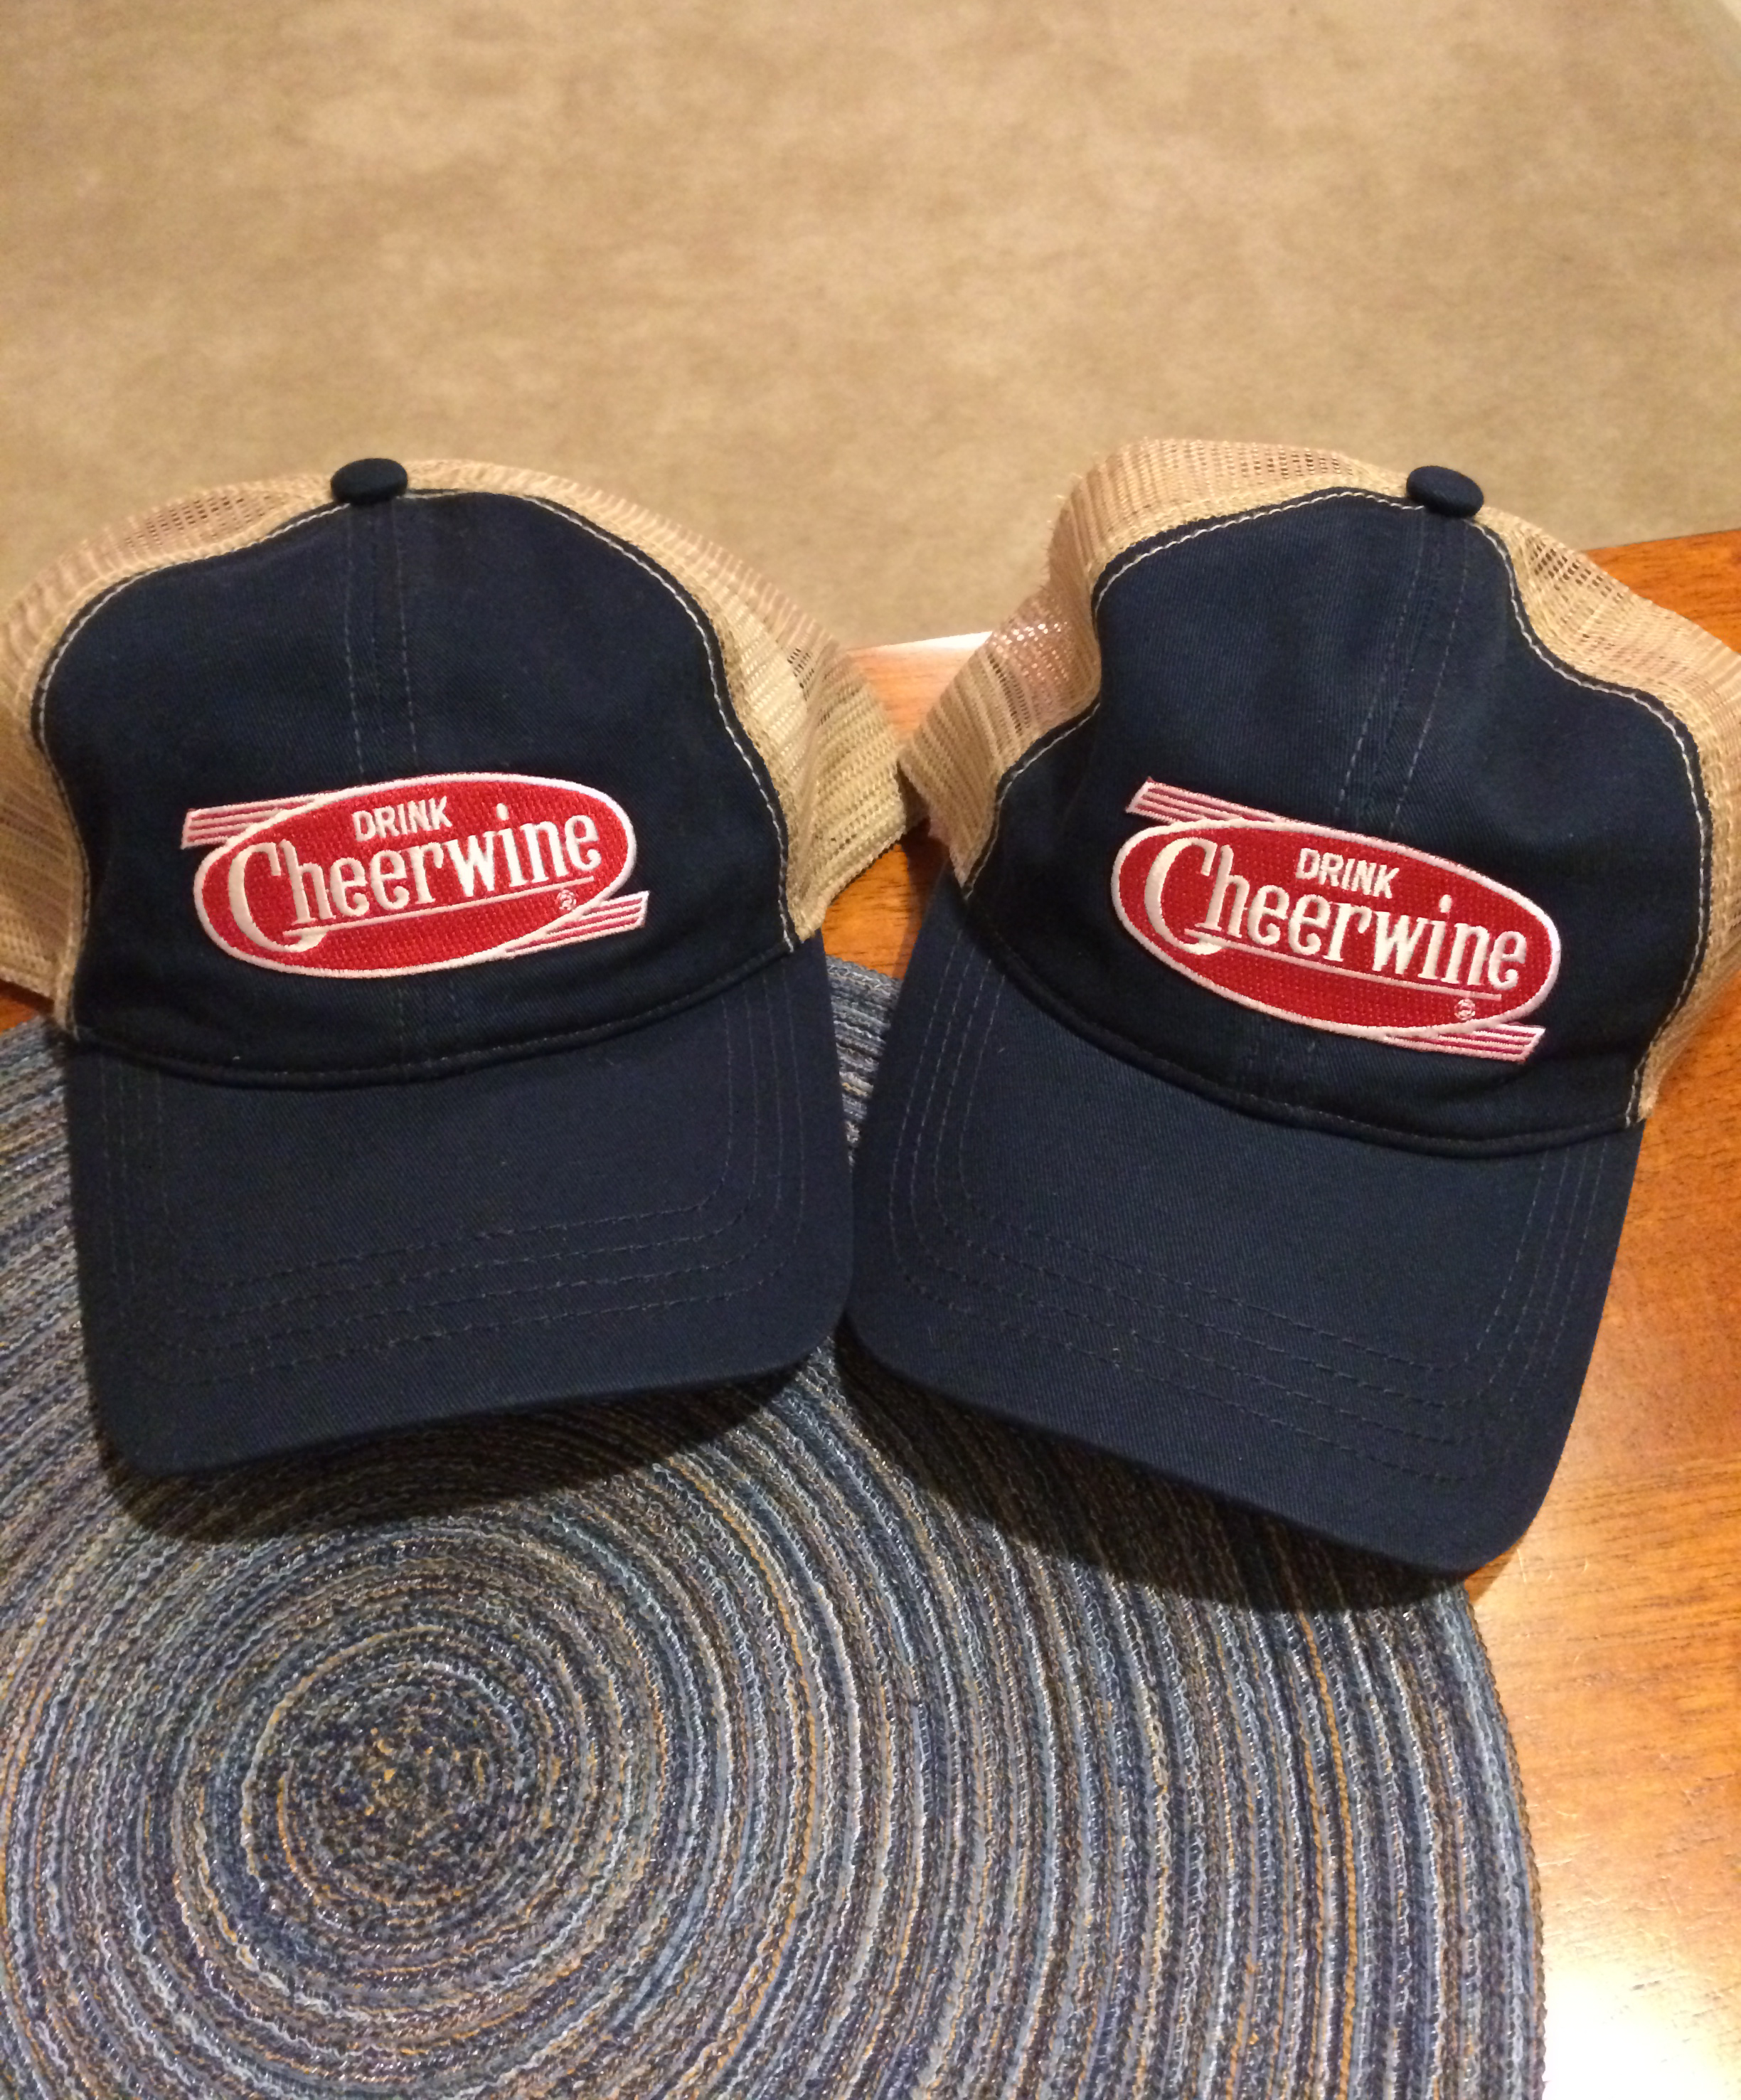 These were the Cheerwine hats we received...pretty nice if you ask me!